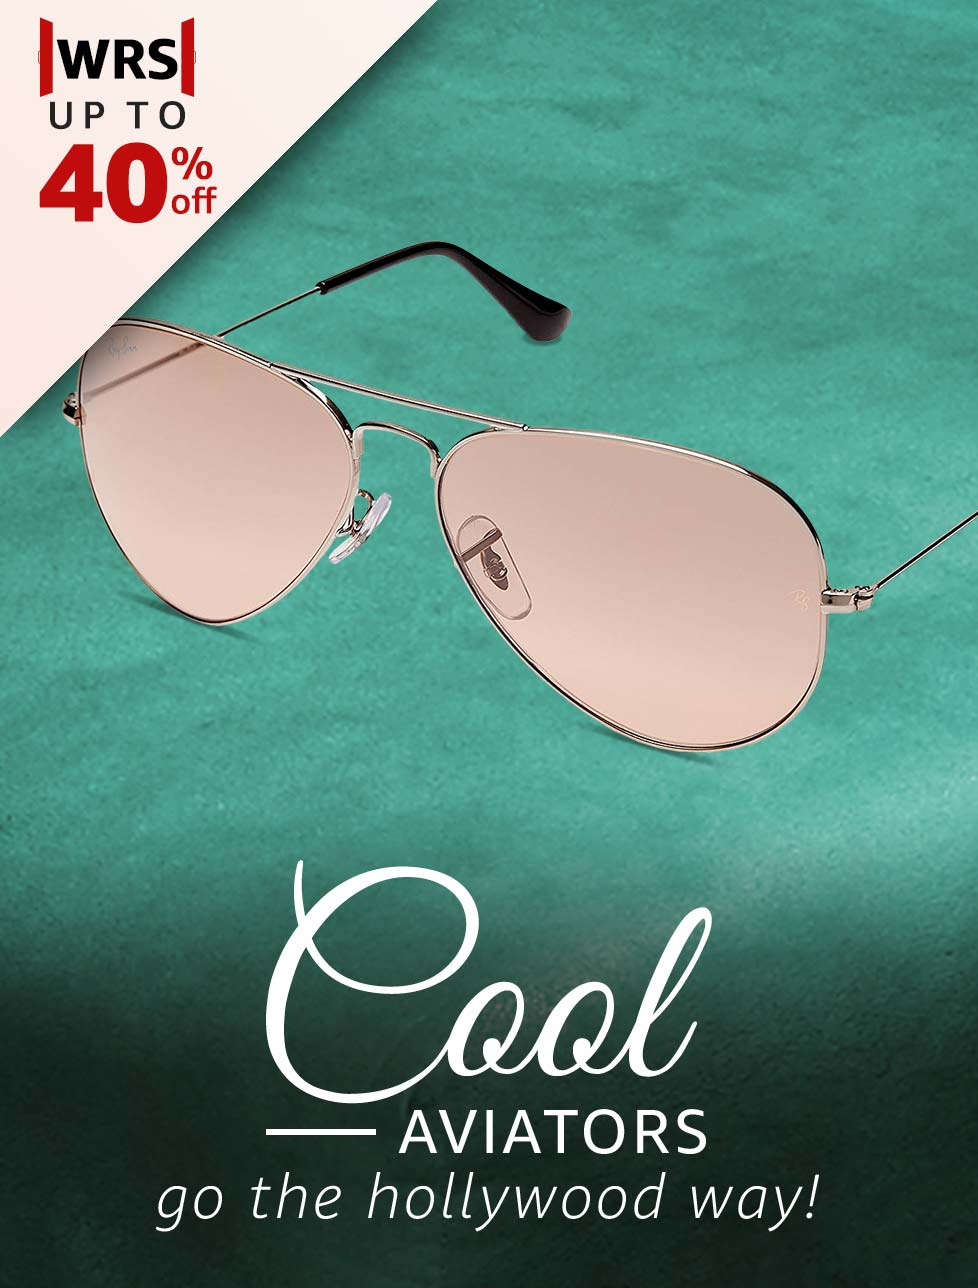 Cool Aviators go the hollywood way